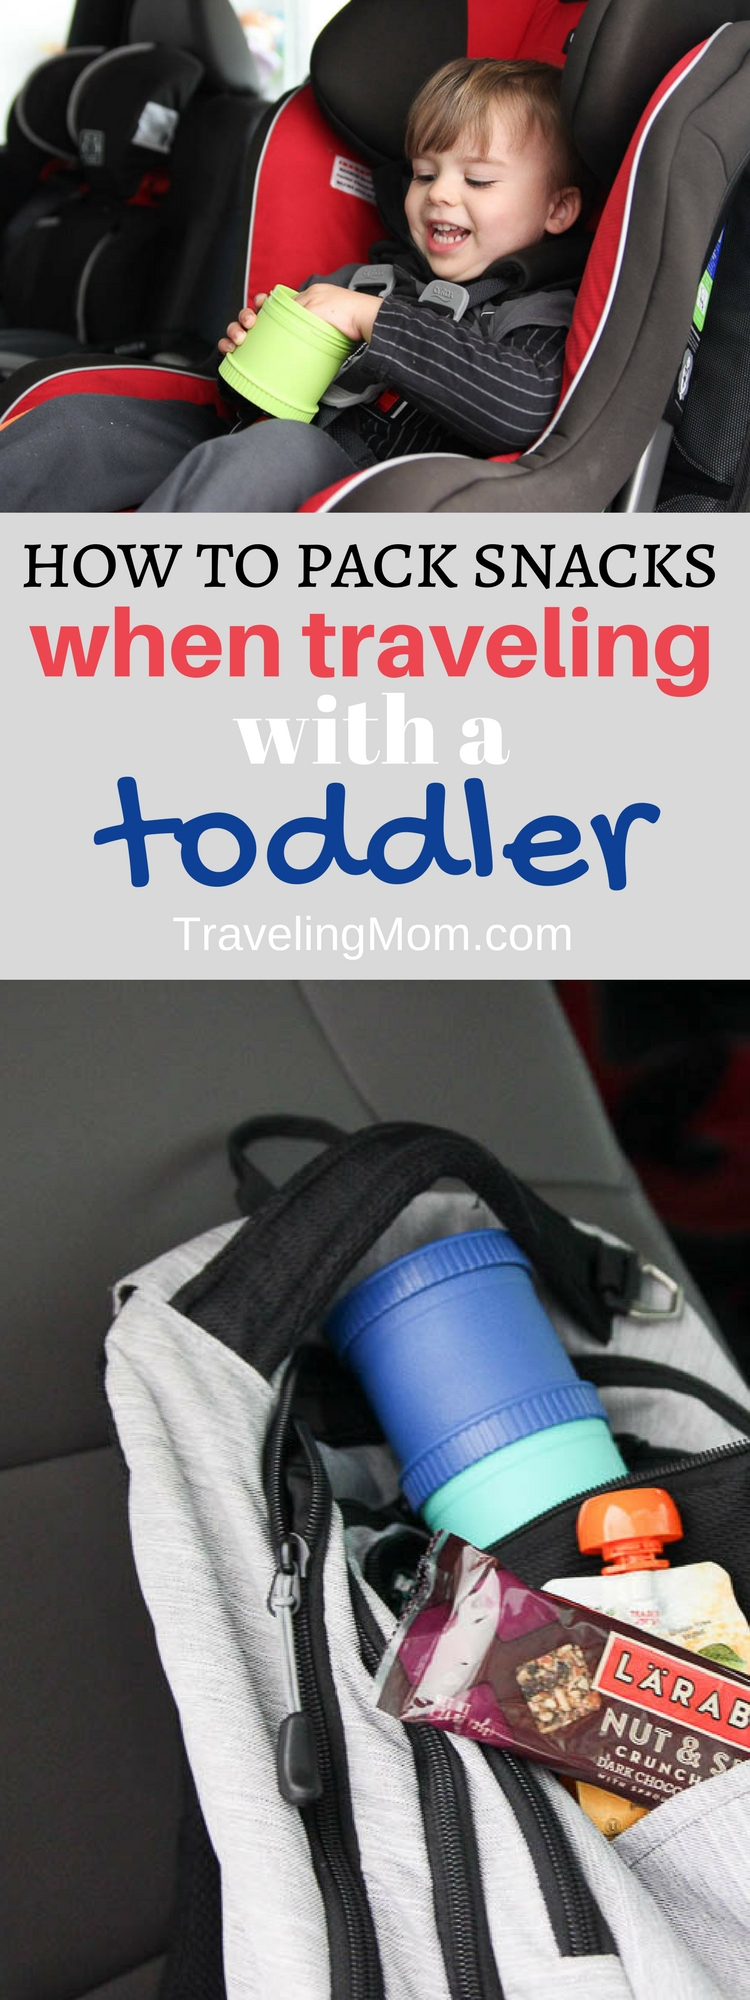 Travel with toddler means you'll need snacks! Check out these great snack hacks for traveling with toddlers. They may save you a hangry meltdown.